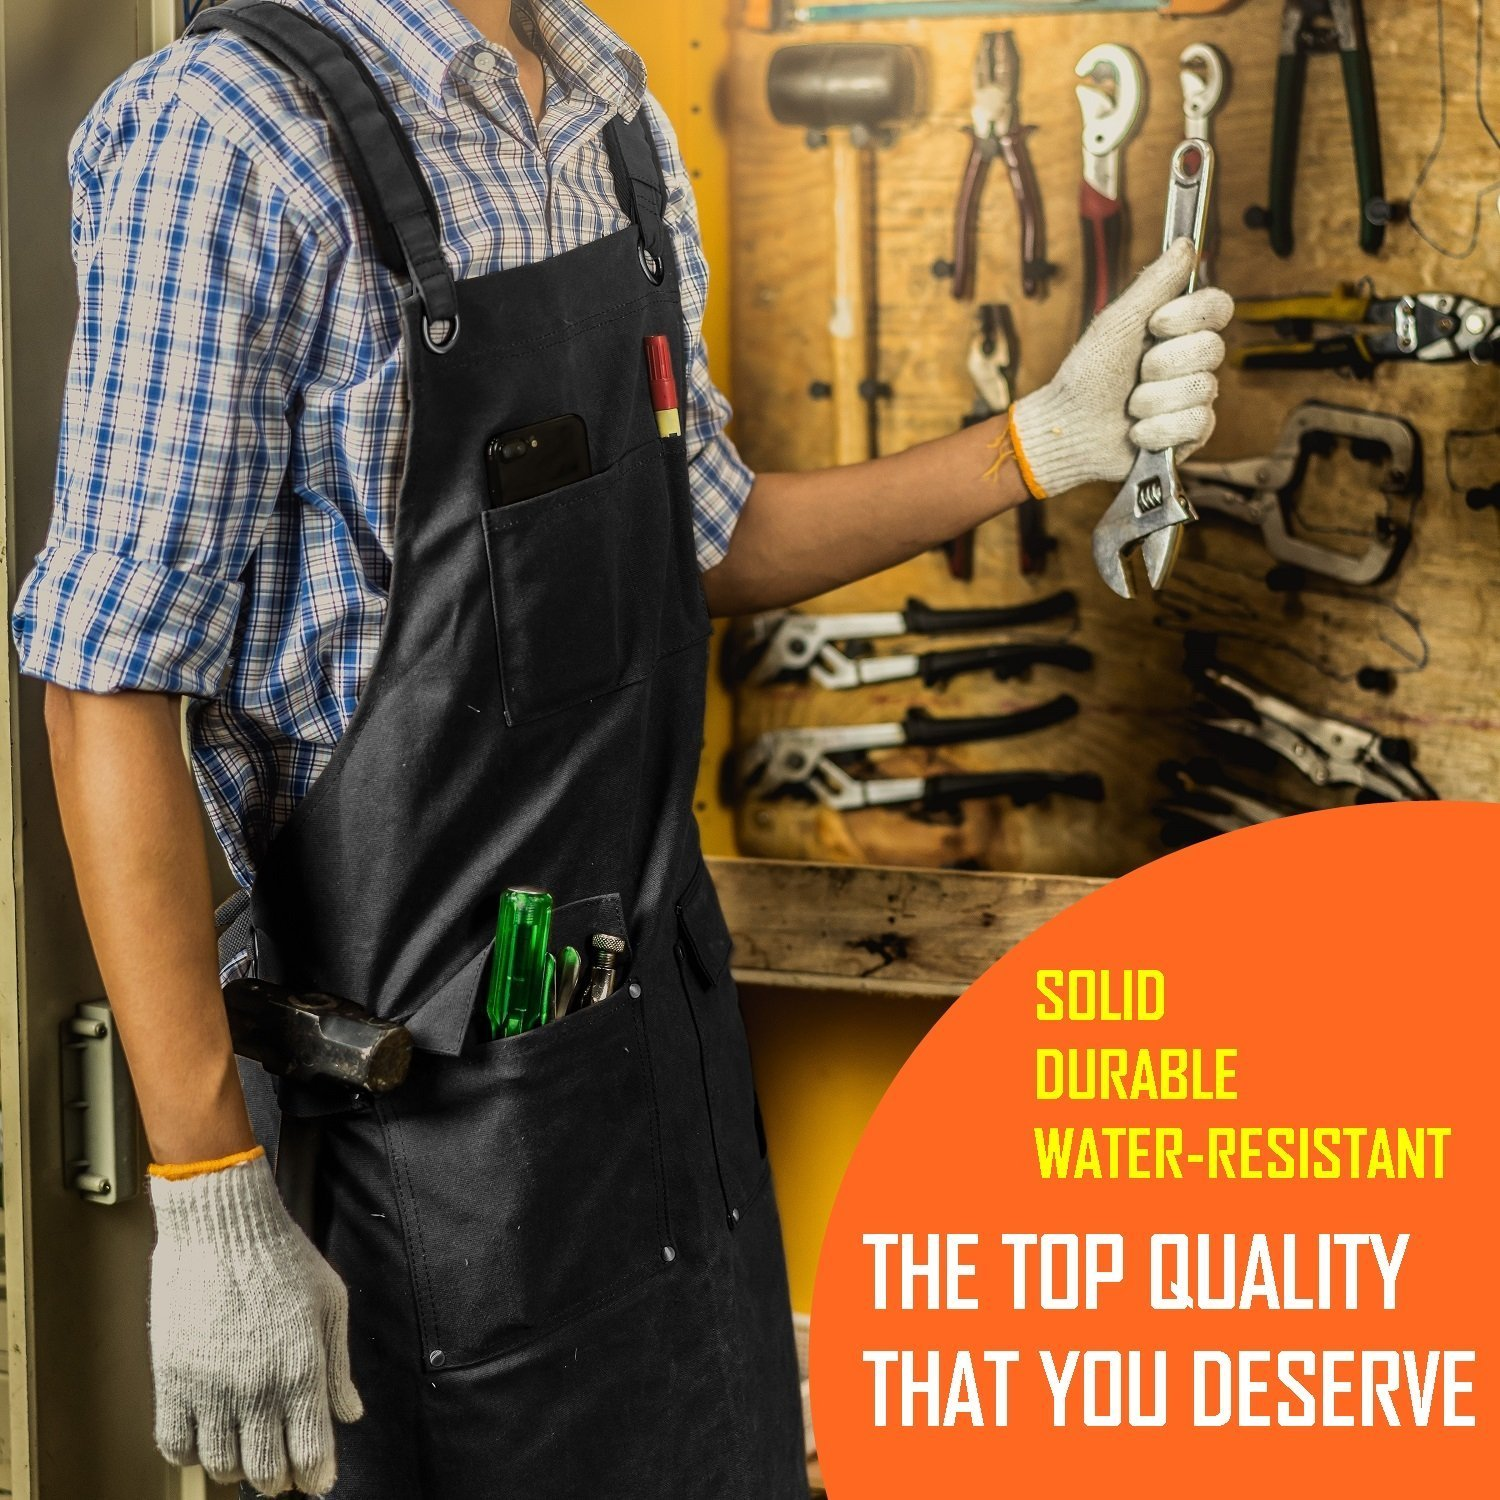 Luxury Waxed Canvas Shop Apron | Heavy Duty Work Apron for Men & Women with Pocket & Cross-Back Straps | Adjustable Tool Apron Up To XXL | Long, Thick, Water Resistant Workshop Apron in Gift Box by GIDABRAND (Image #4)